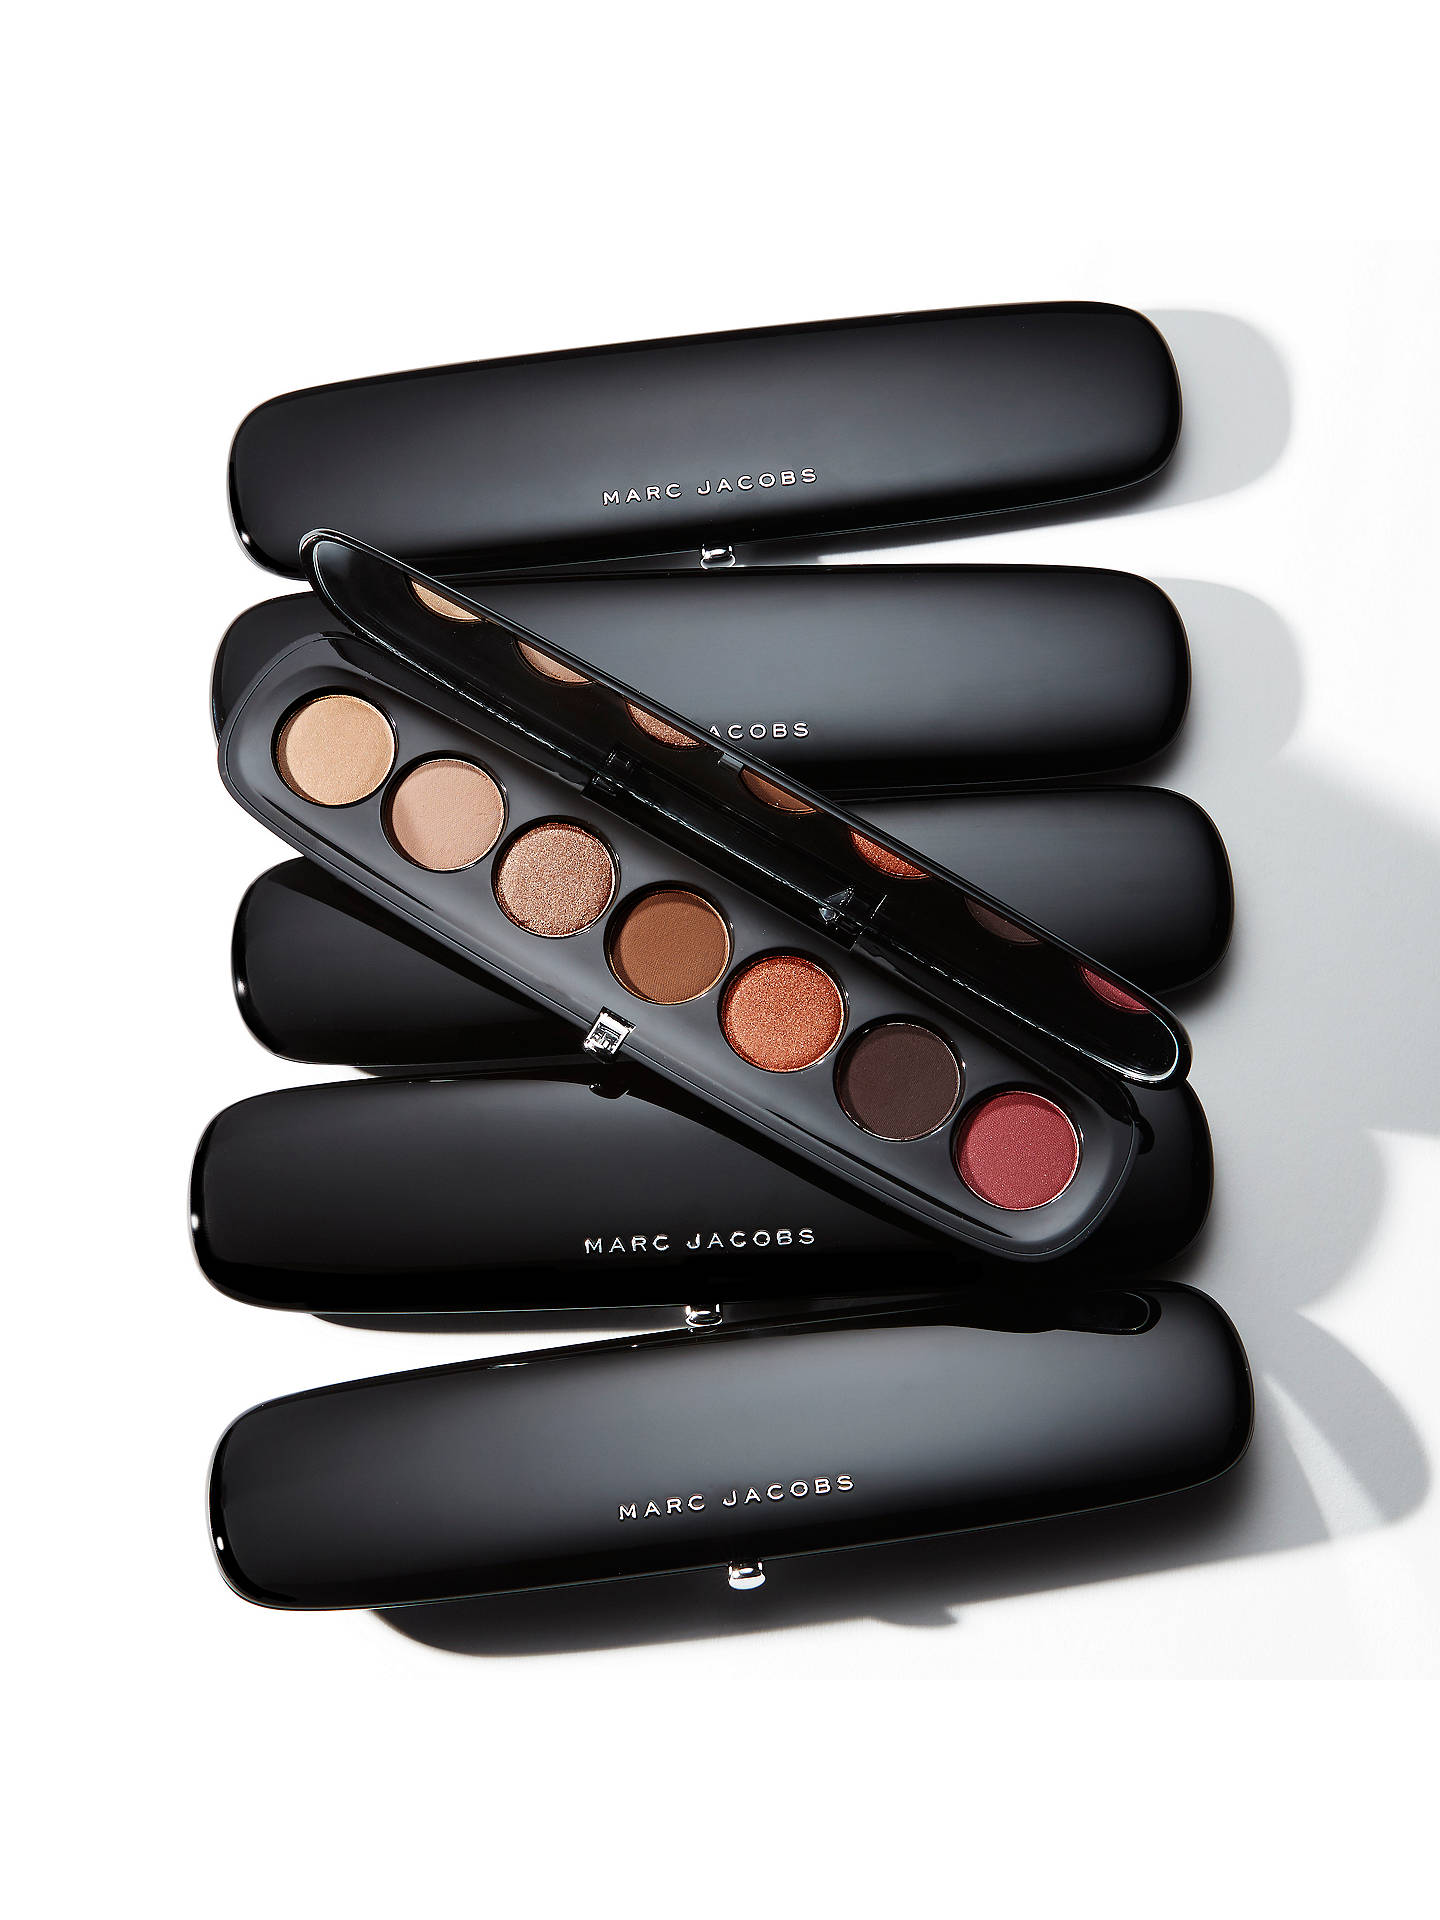 BuyMarc Jacobs Eye-Conic Longwear Eyeshadow Palette, Scandalust Online at johnlewis.com